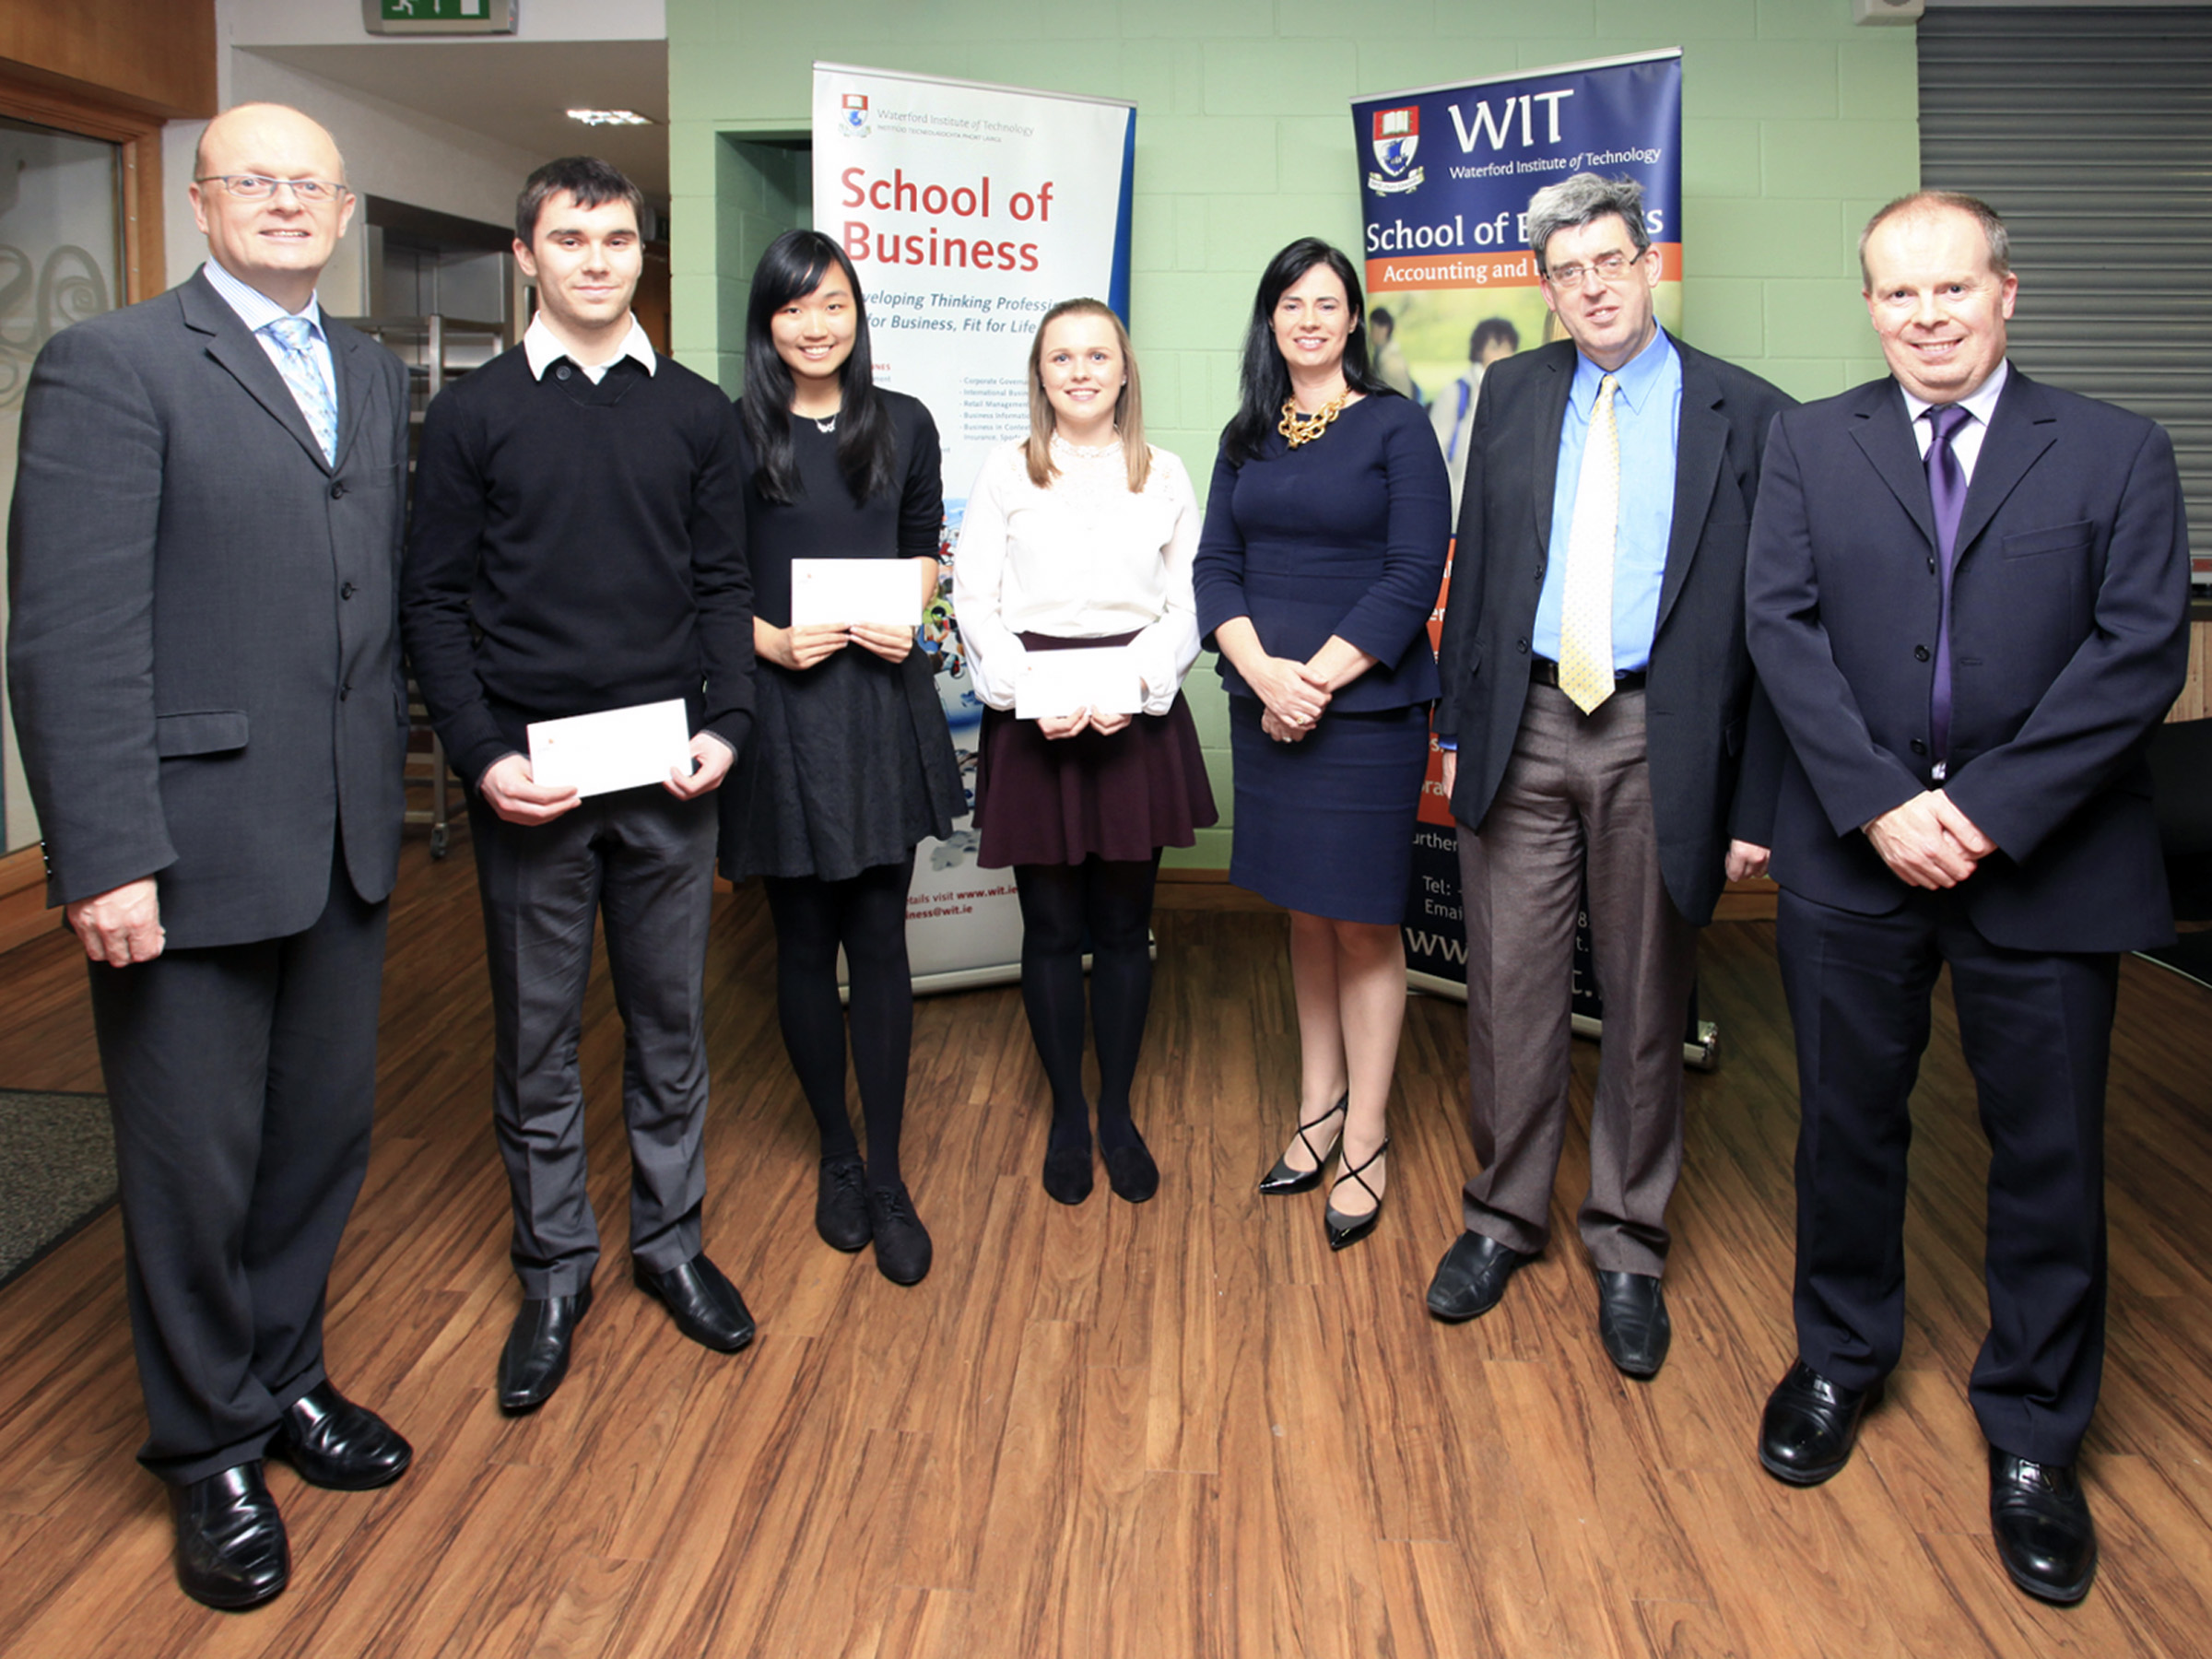 Pictured are: Dr. Thomas O'Toole, (Head of School of Business), Shane Rice, Seen Mun Chung, Gemma Heaslip, Siobhan Collier (PwC), Ger Long (Head of Department of Accouting & Finance) and Paul Treacy (Course Leader, BA (Hons) in Accounting)